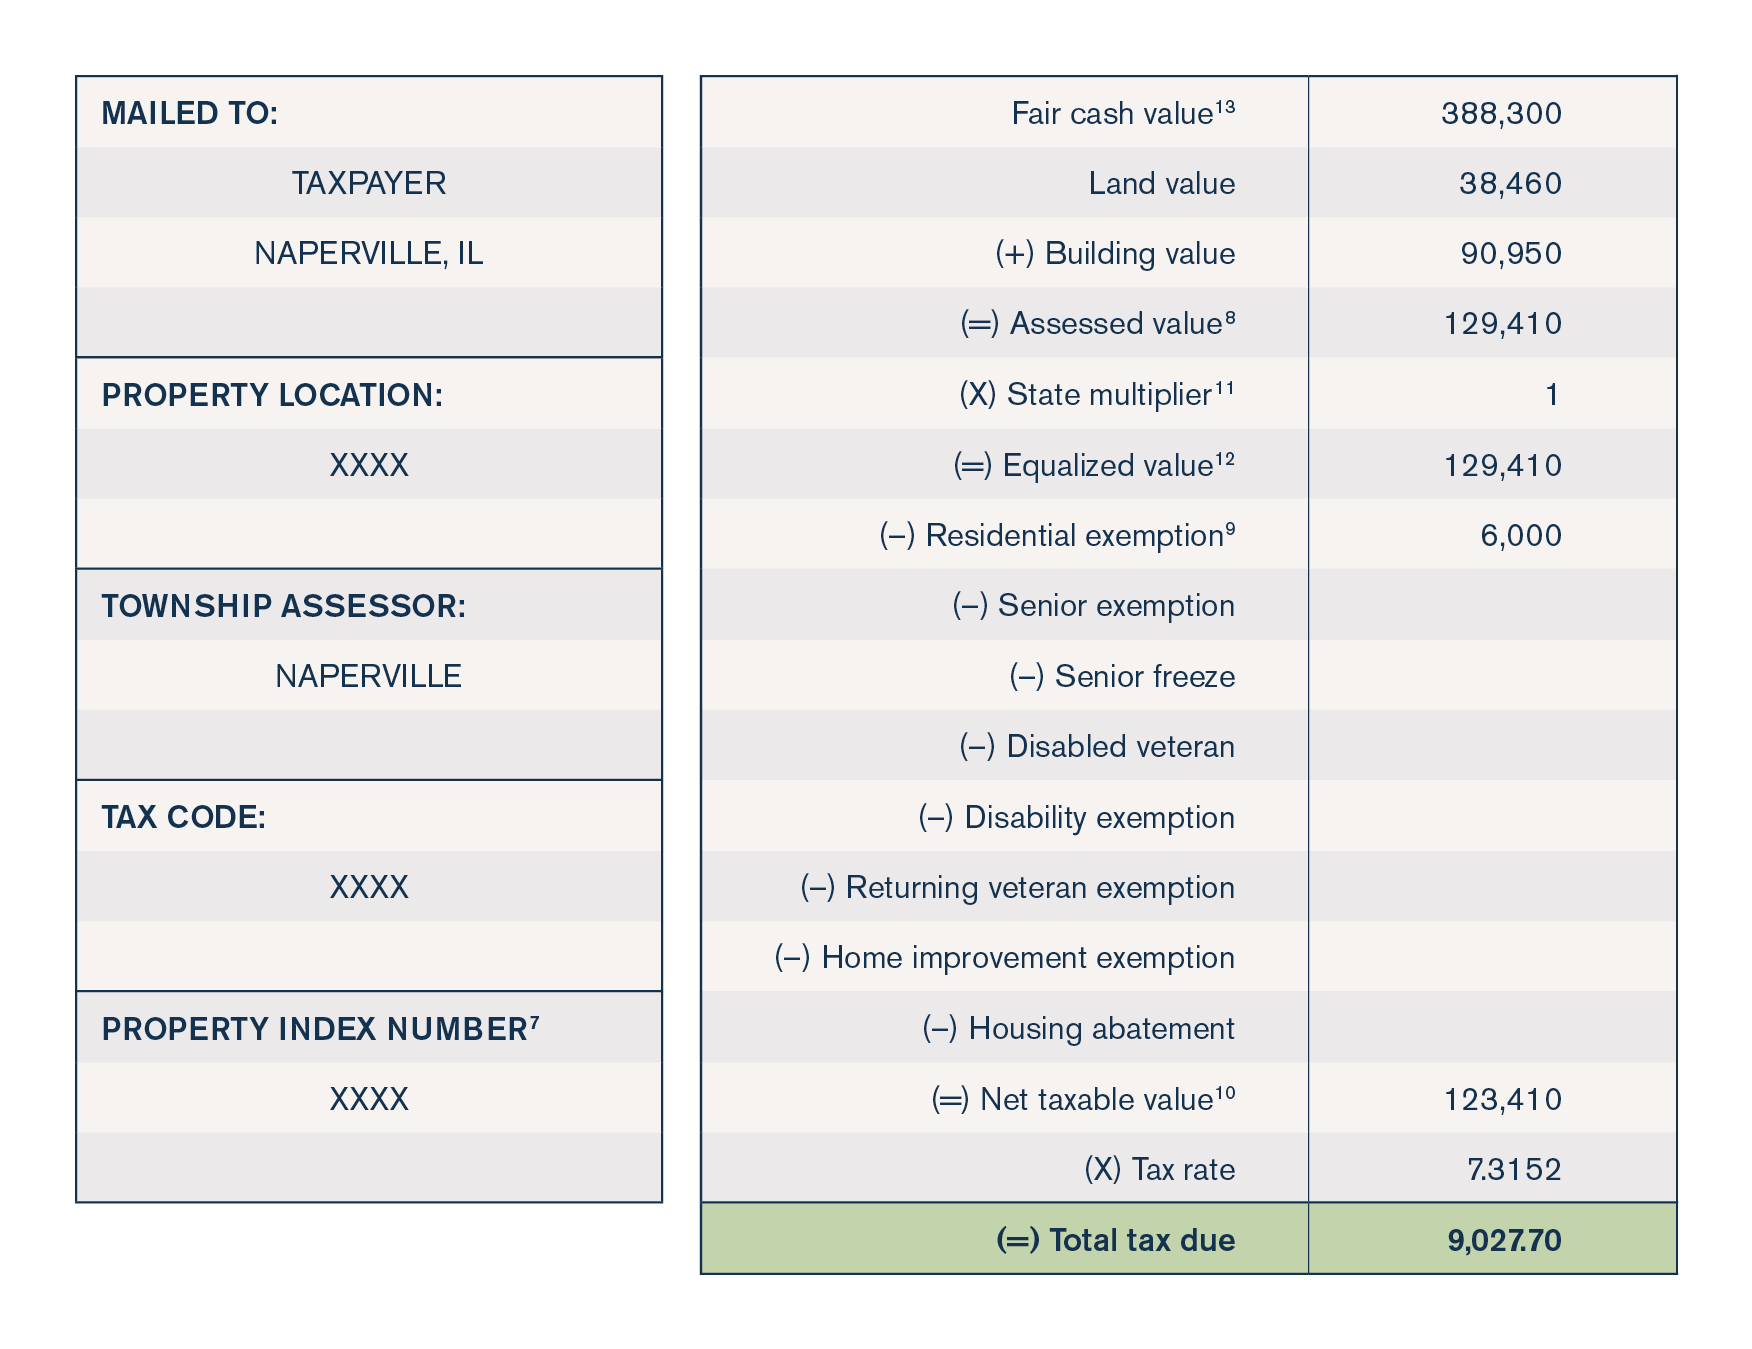 Sample DuPage County tax bill for a $388,000 home, 2016 assessment year, payable in 2017 (2)